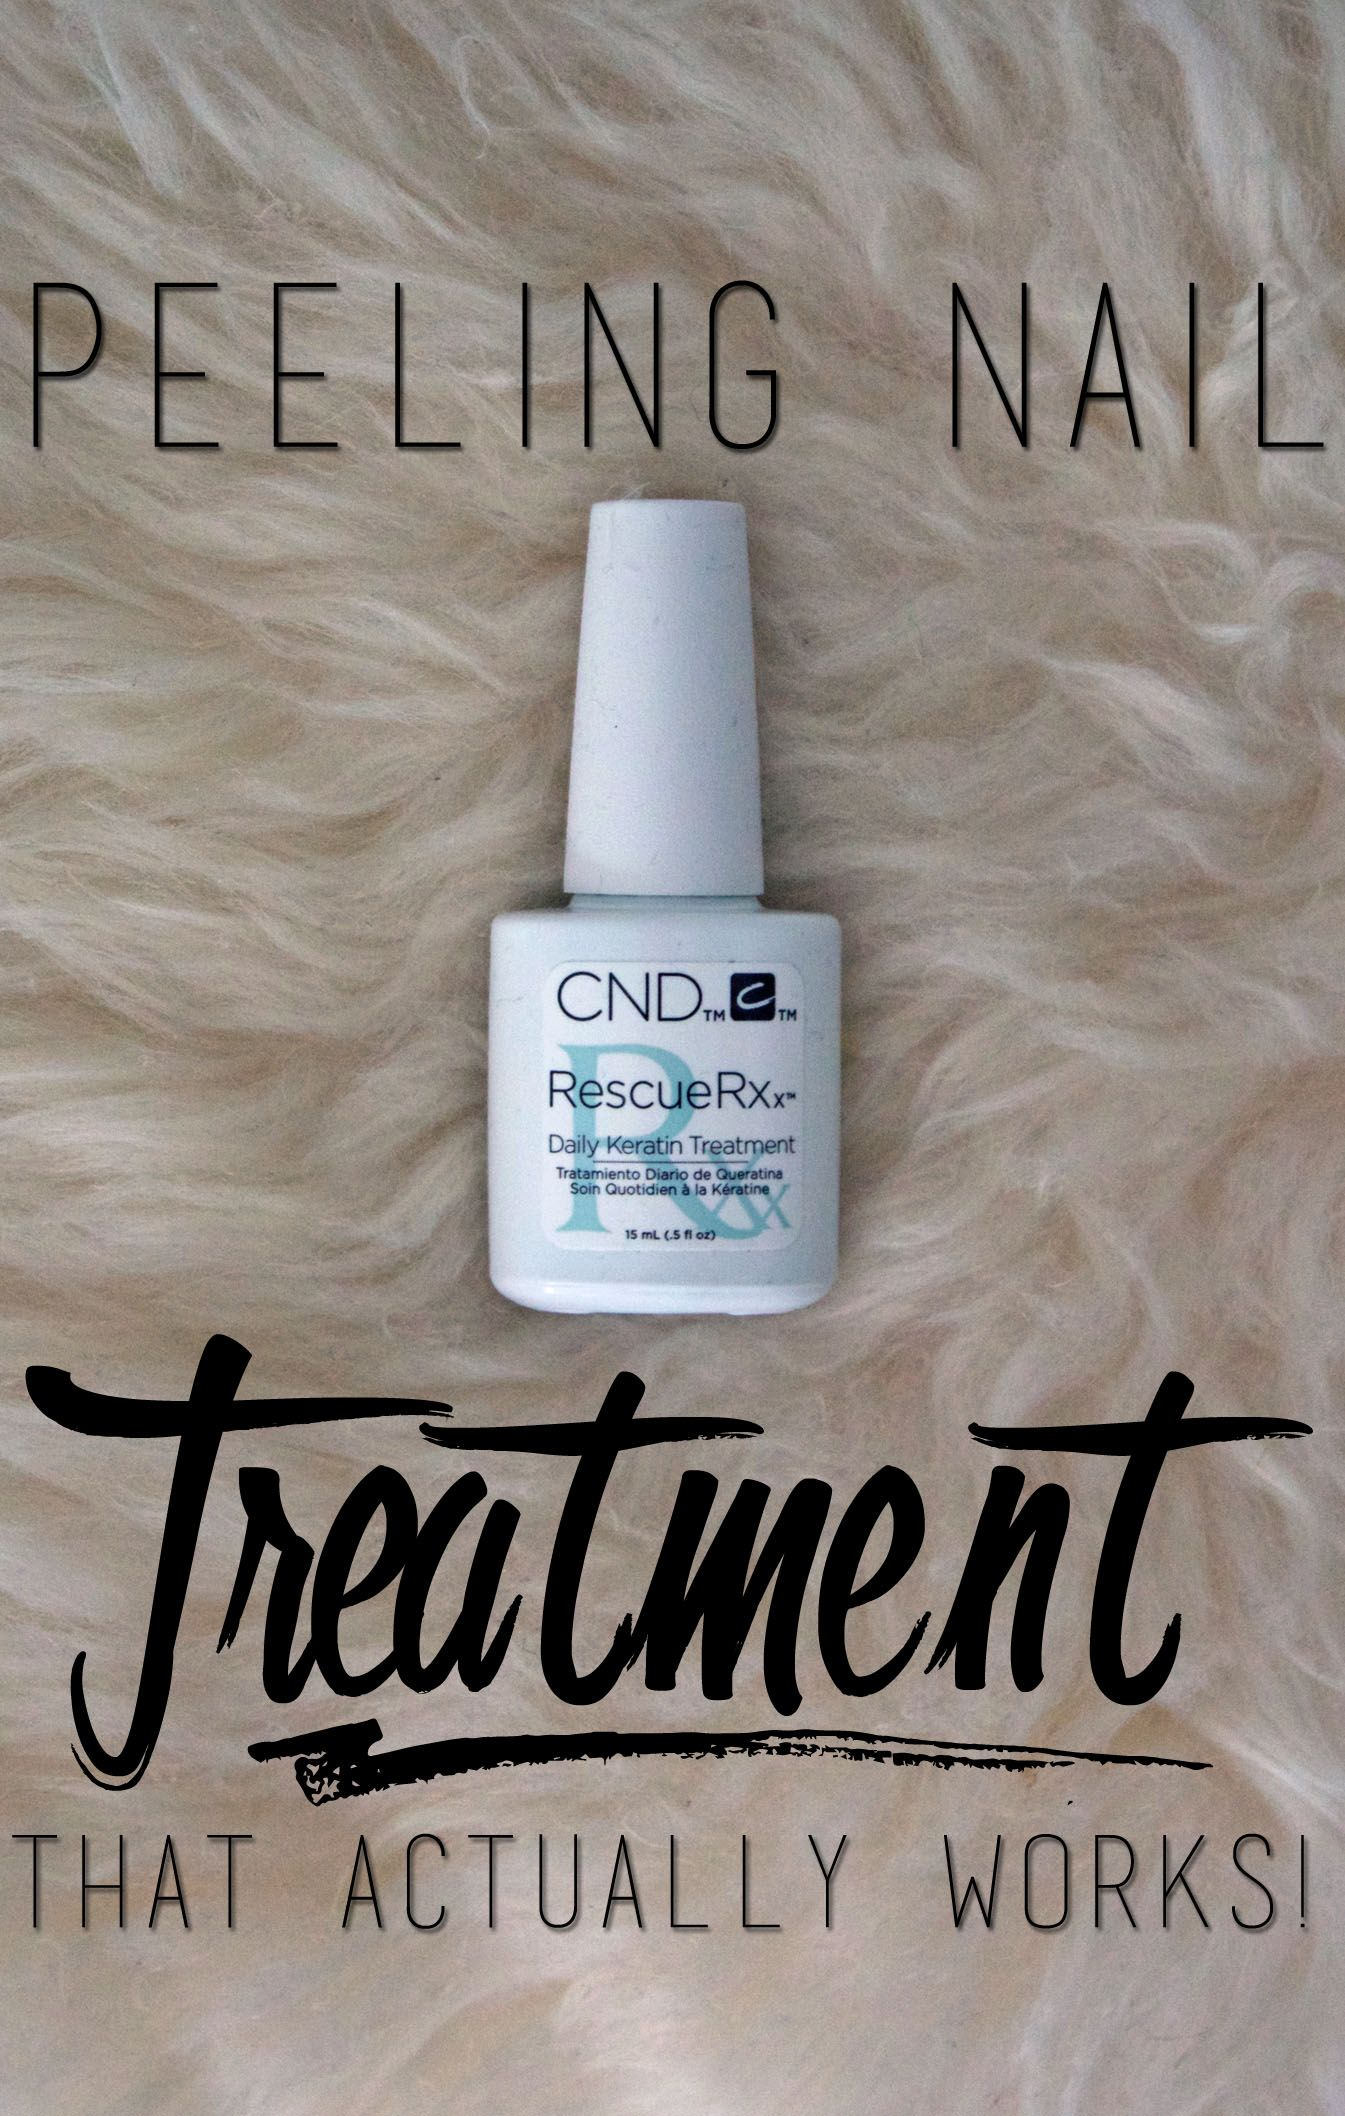 Peeling Nails: A Treatment That Actually Works!? | Peeling nails ...